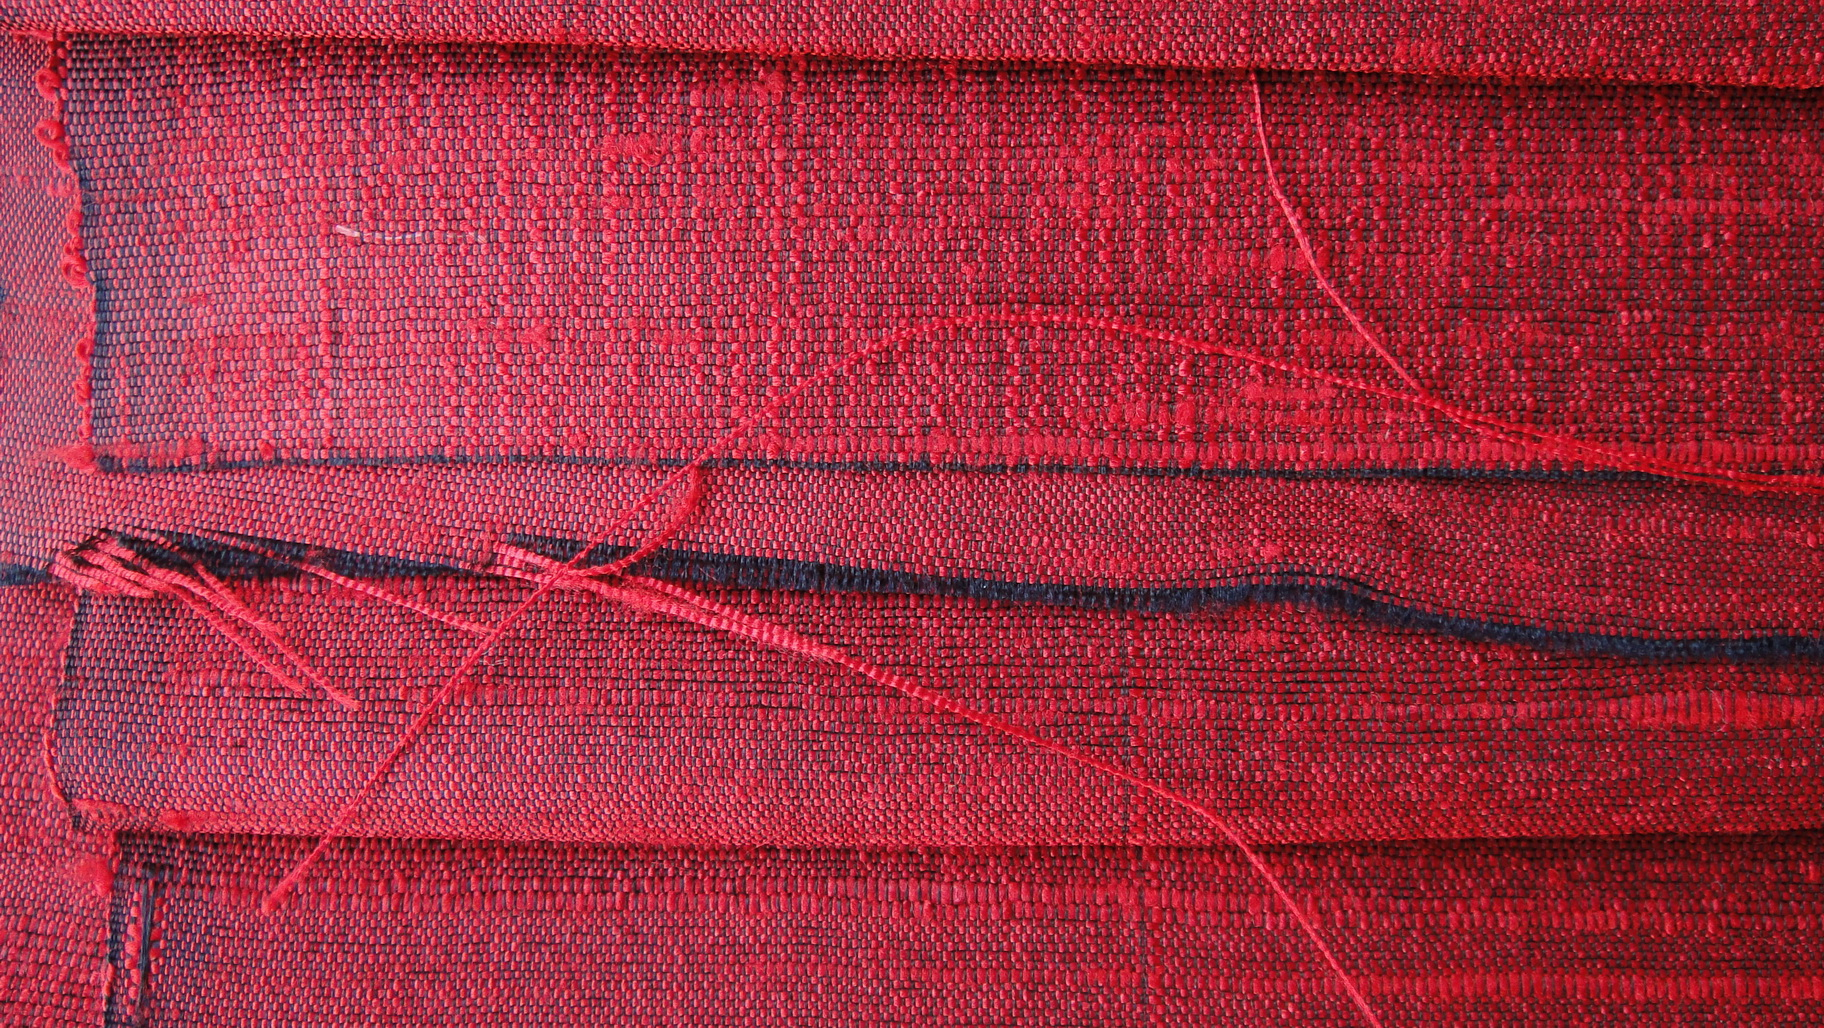 The raw silks of Thailand Notes on The Cultured Life